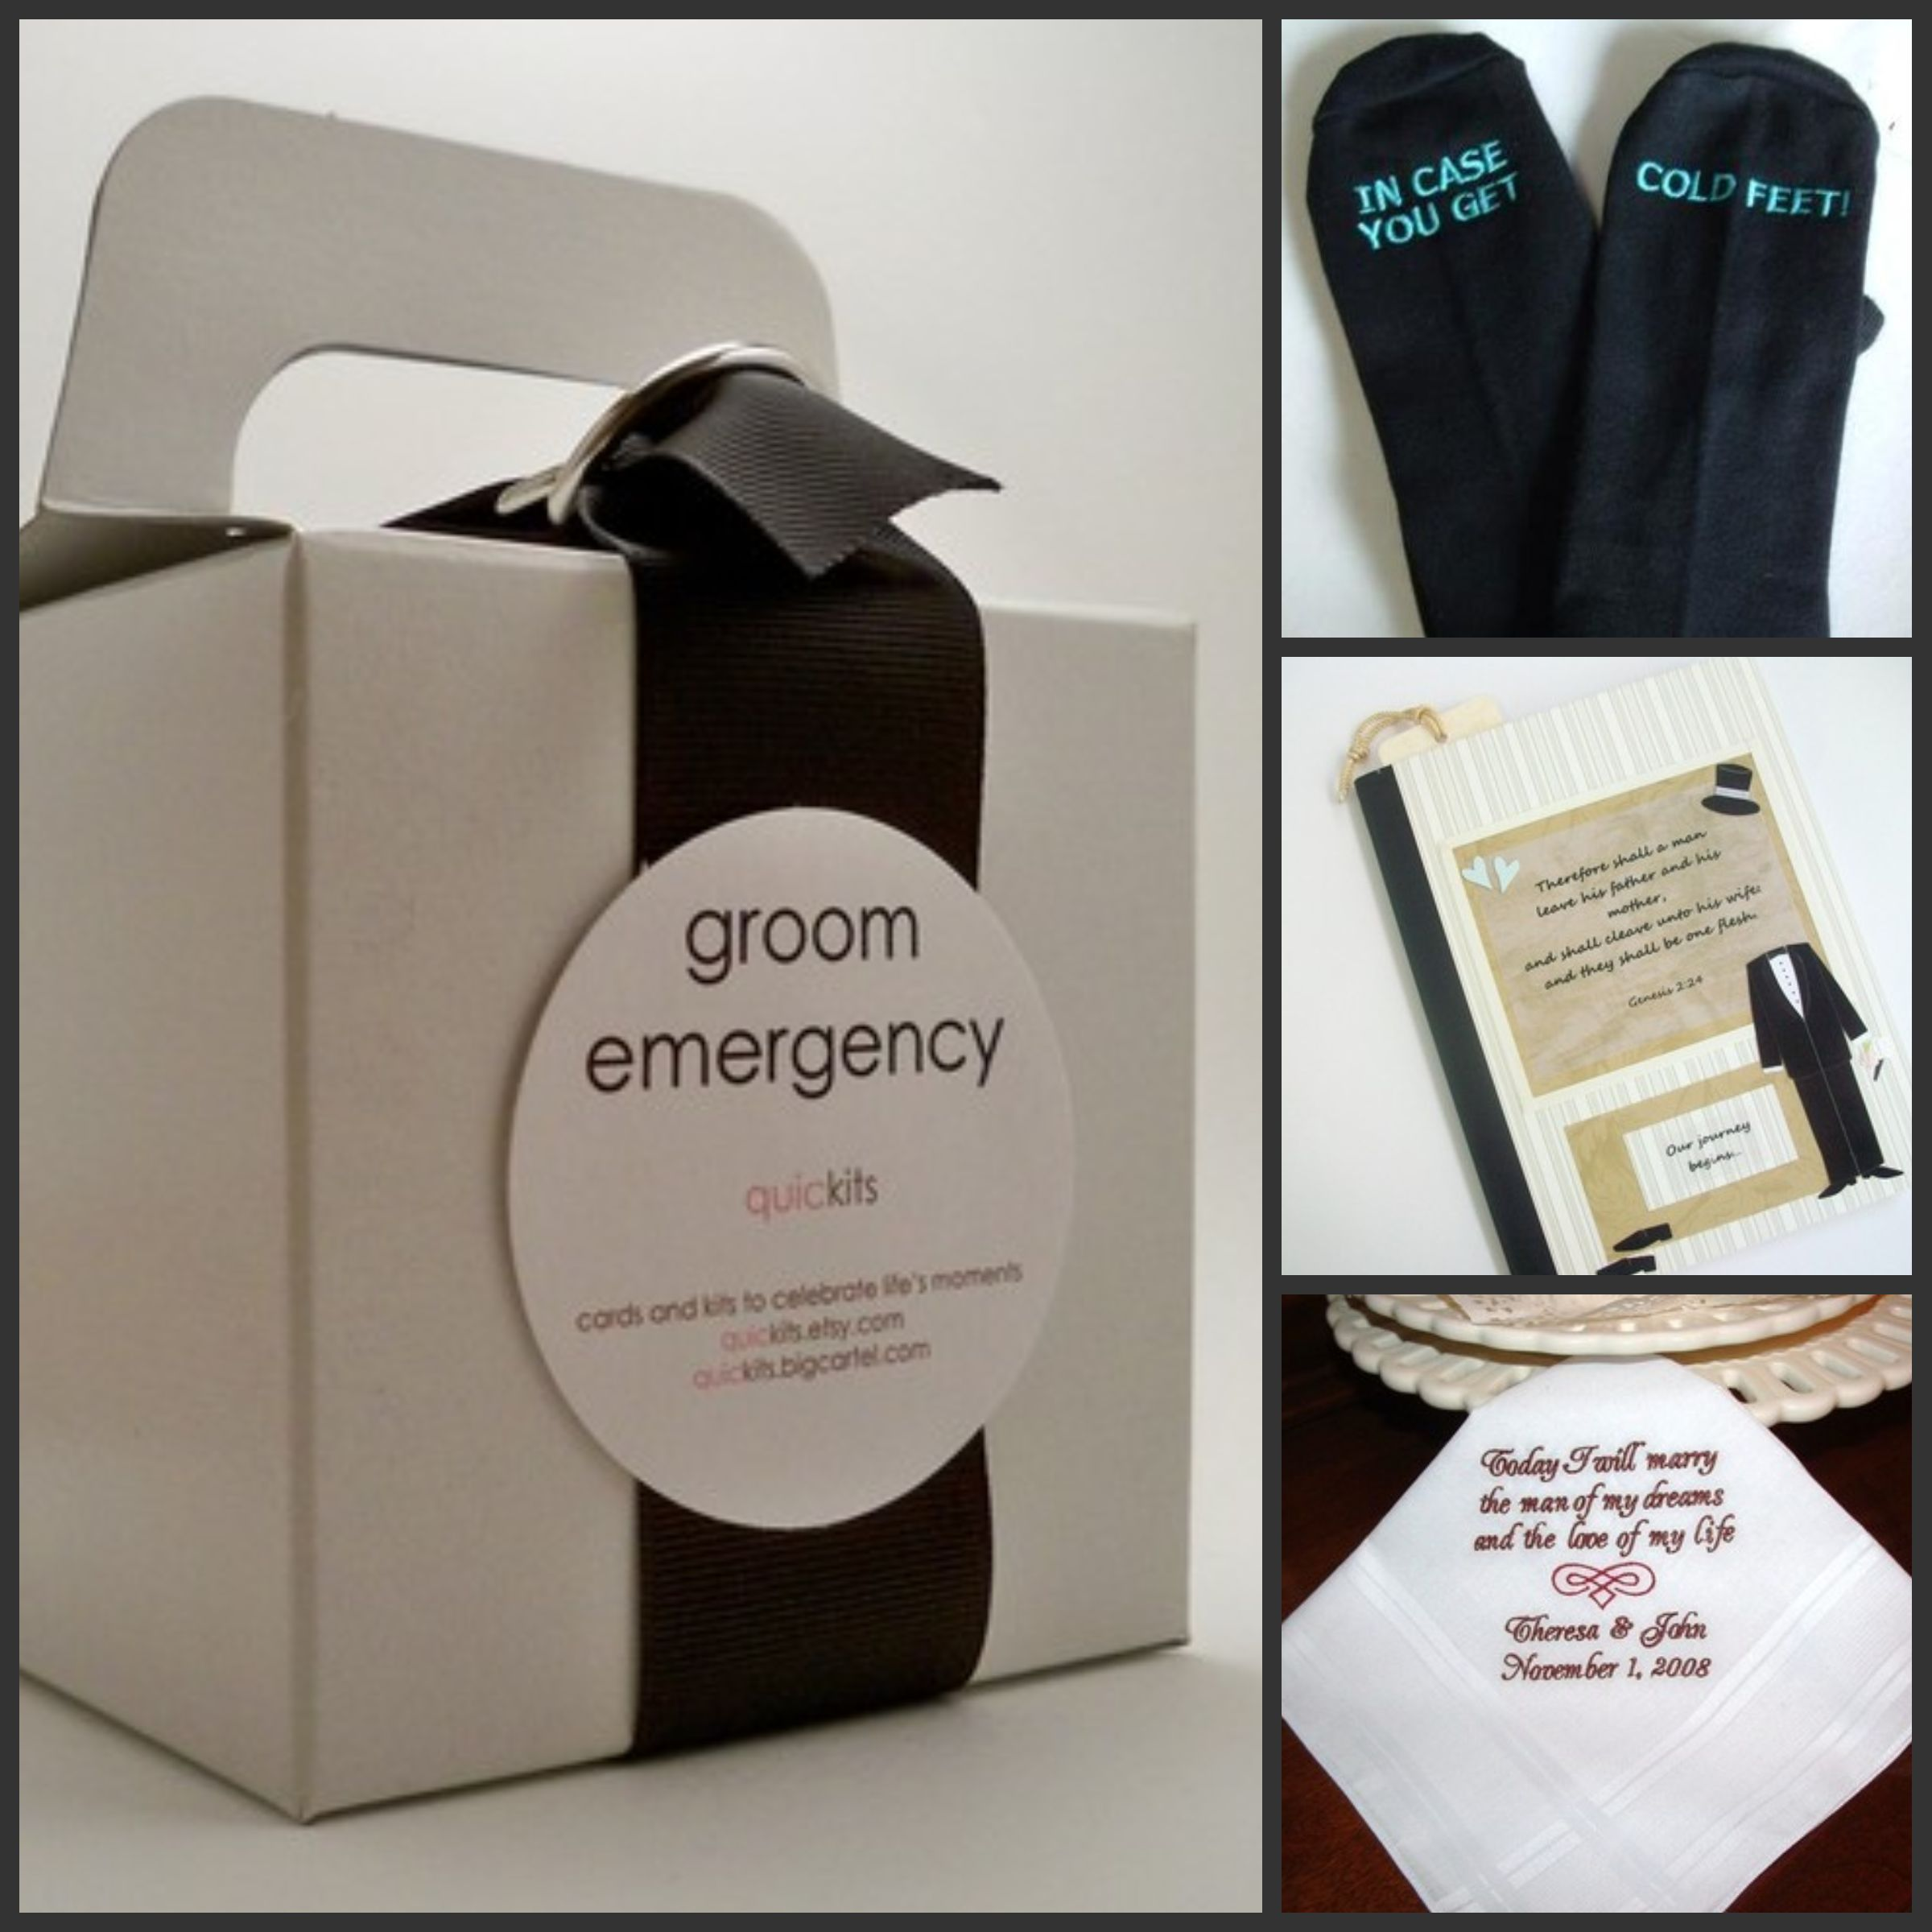 Handmade Wedding Gift Ideas For Bride And Groom : personal gifts for your groom clockwise from left groom emergency kit ...